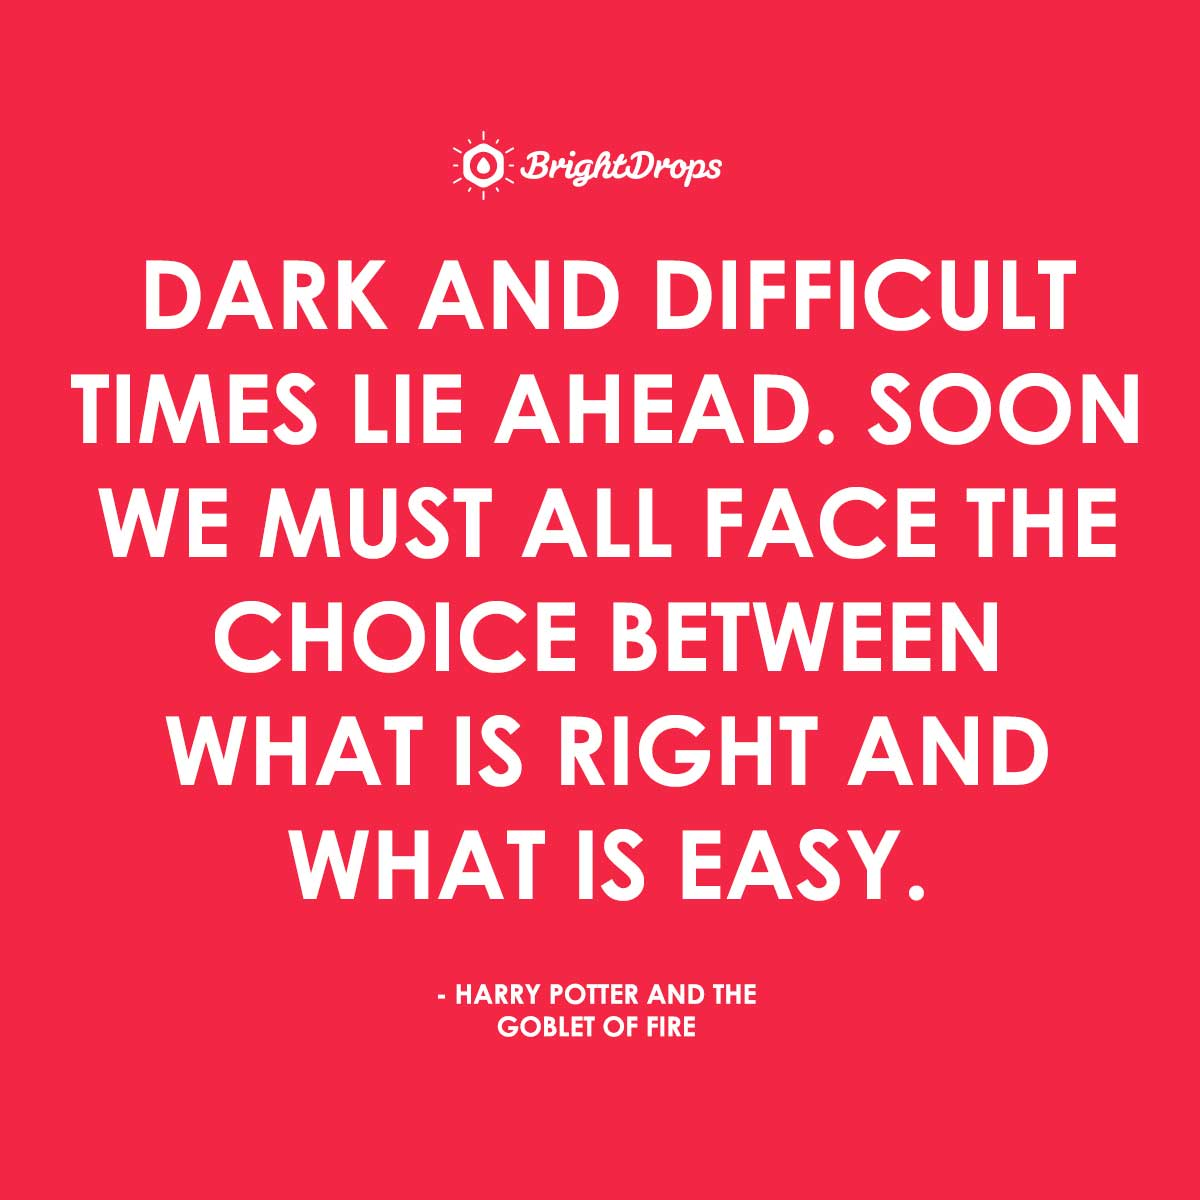 Dark and difficult times lie ahead. Soon we must all face the choice between what is right and what is easy. - Harry Potter and the Goblet of Fire